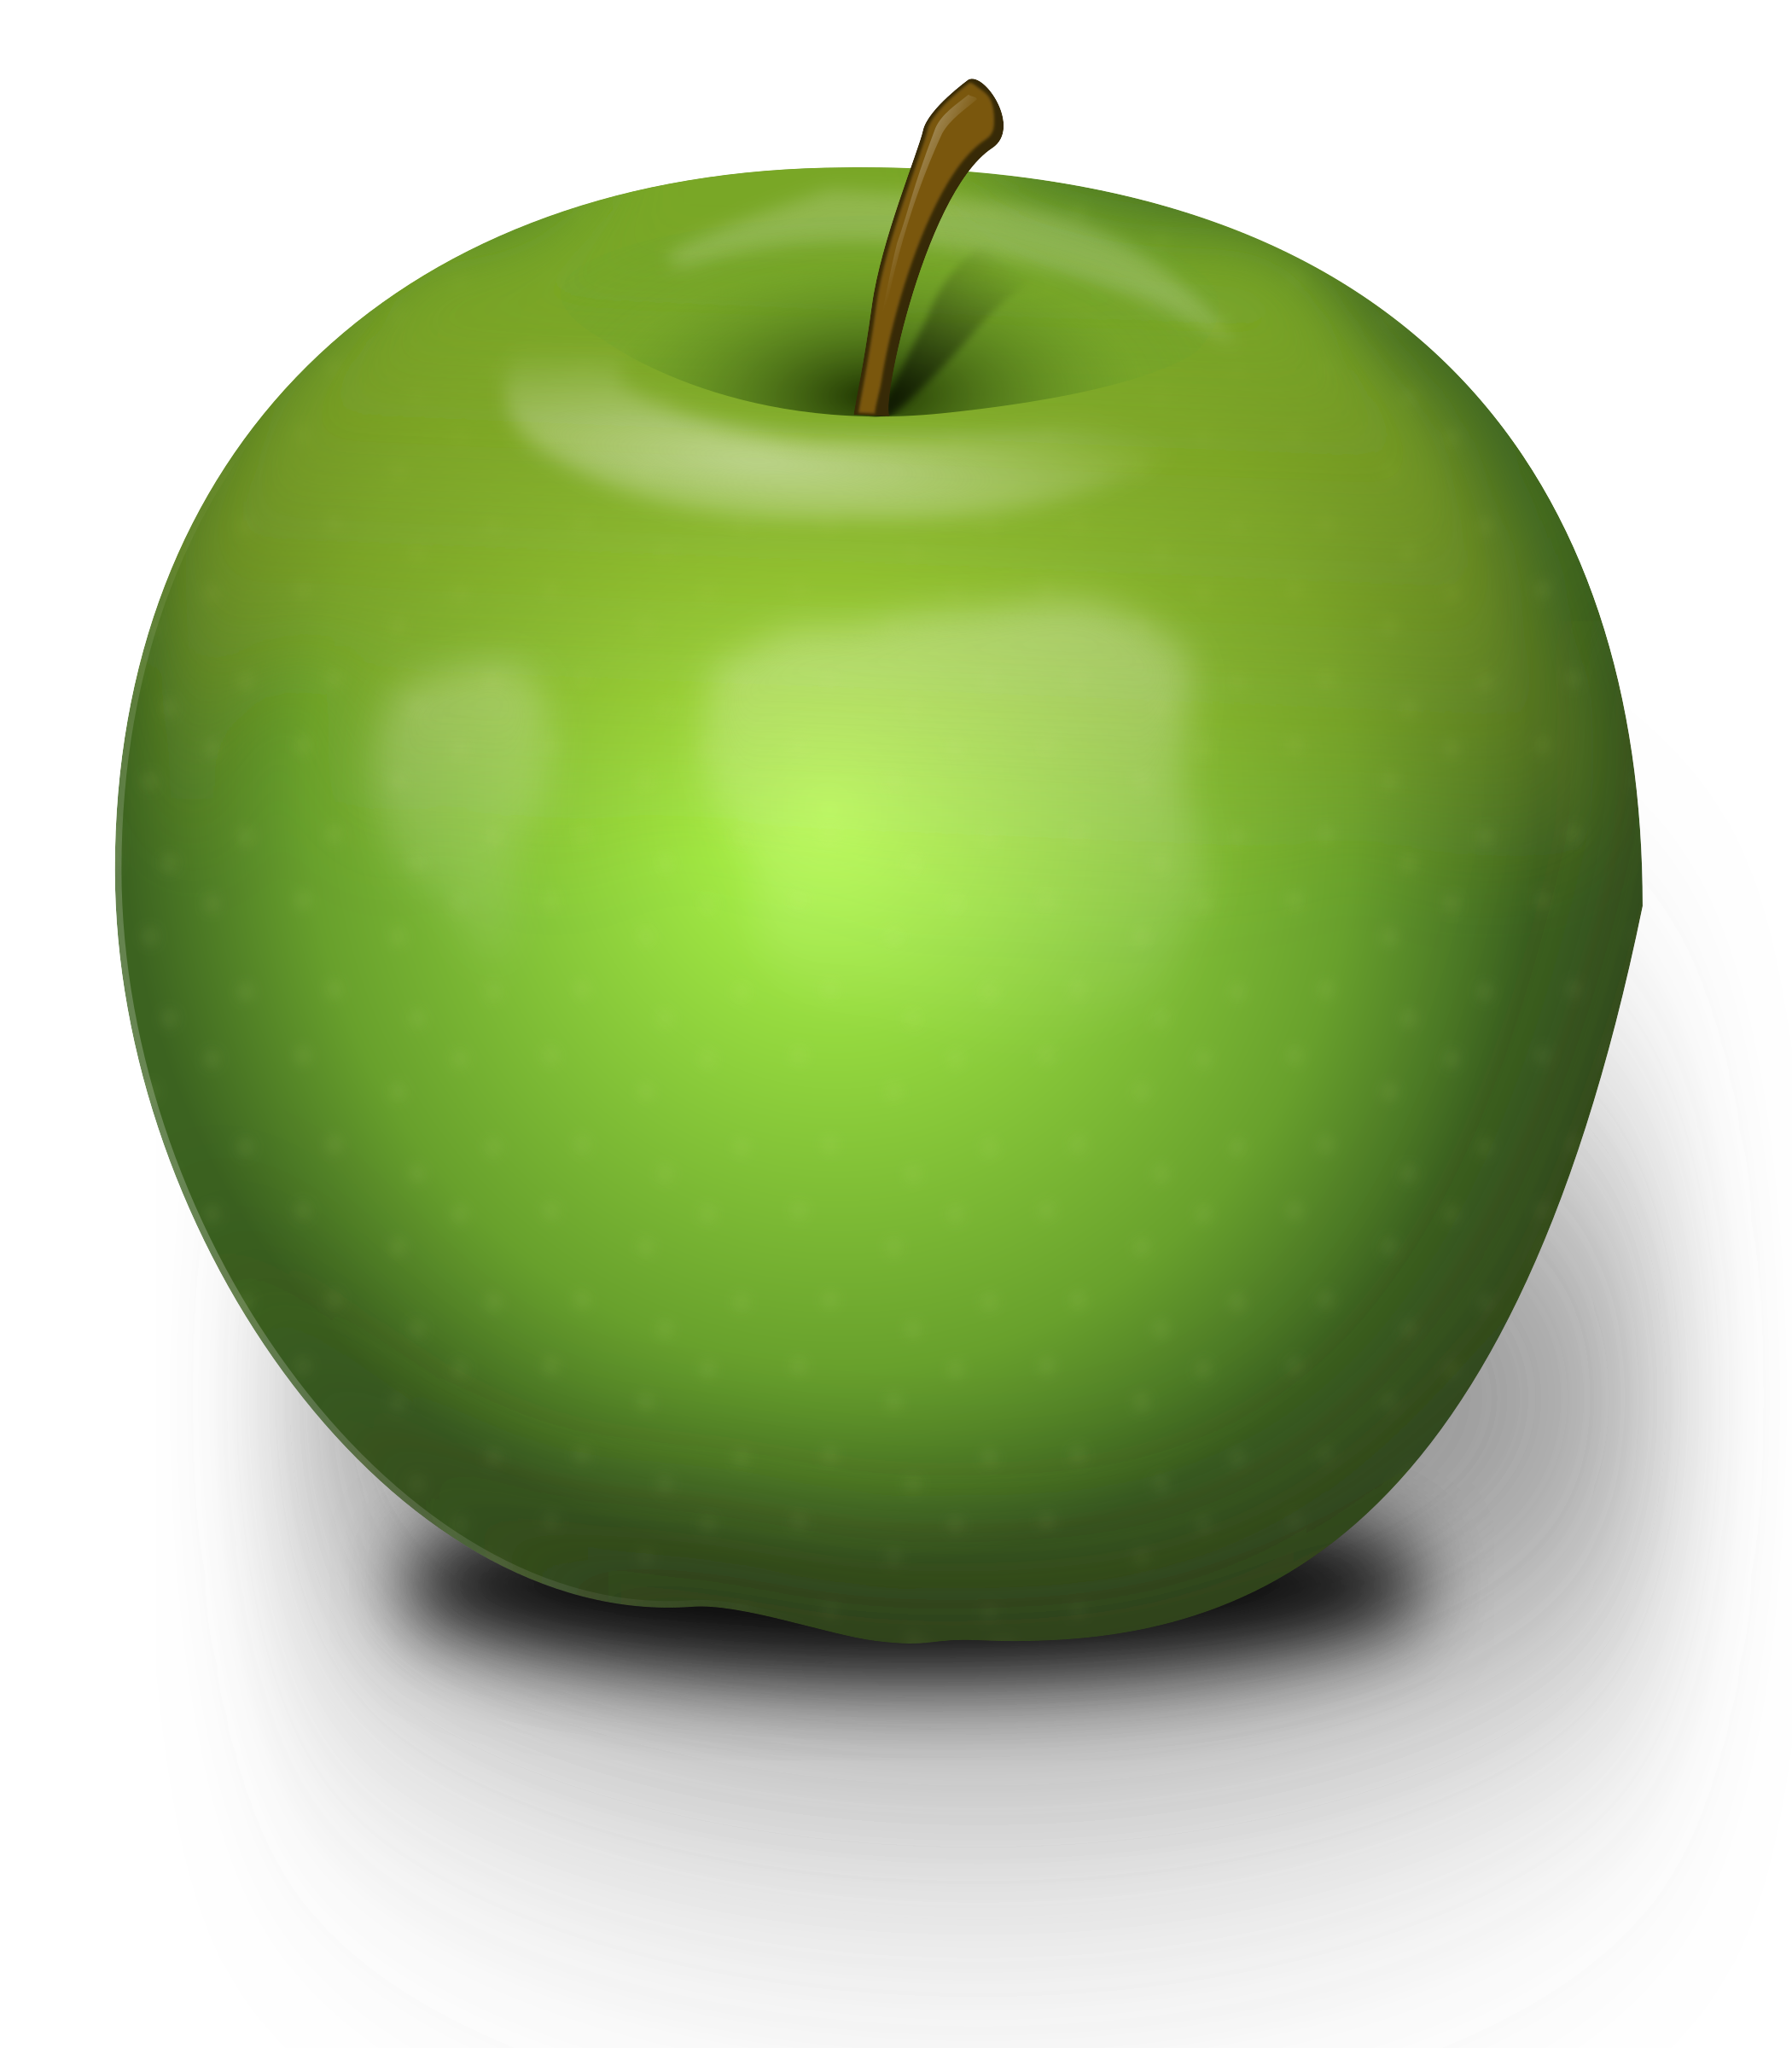 Clipart green apple images clipart royalty free stock Clipart - Photorealistic Green Apple clipart royalty free stock